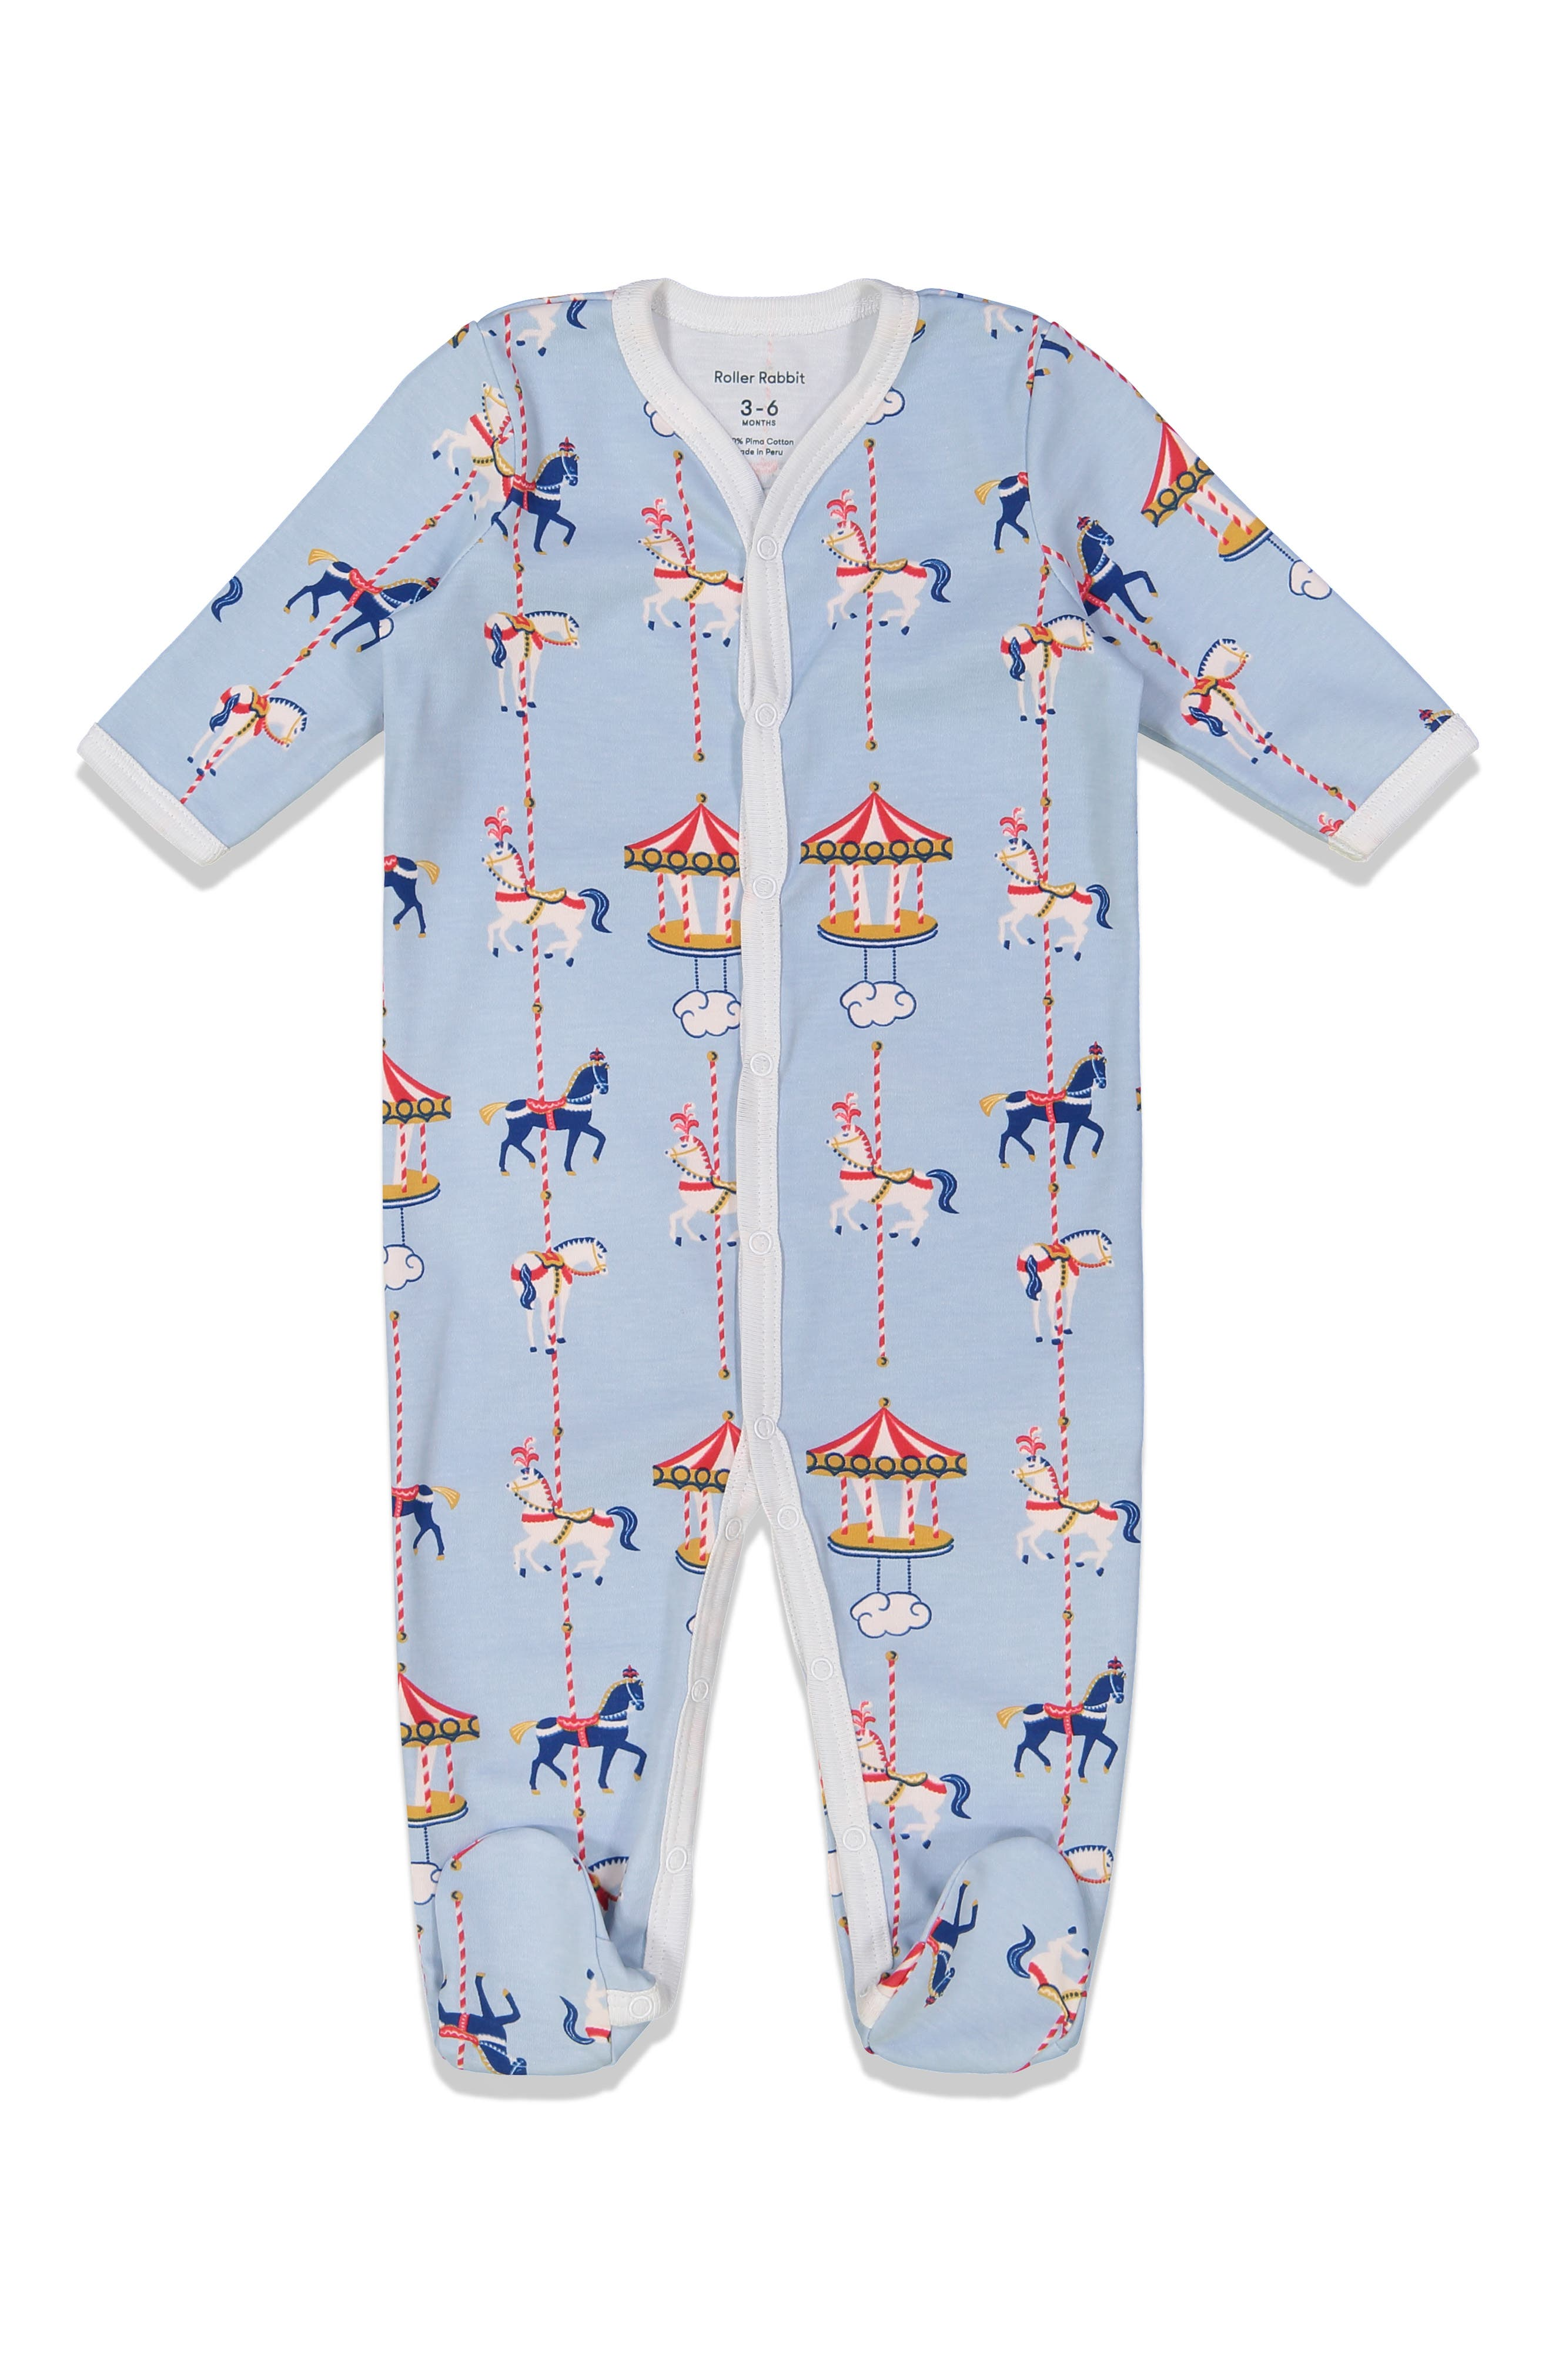 Infant Roller Rabbit Carousel Fitted One-Piece Footie Pajamas, Blue